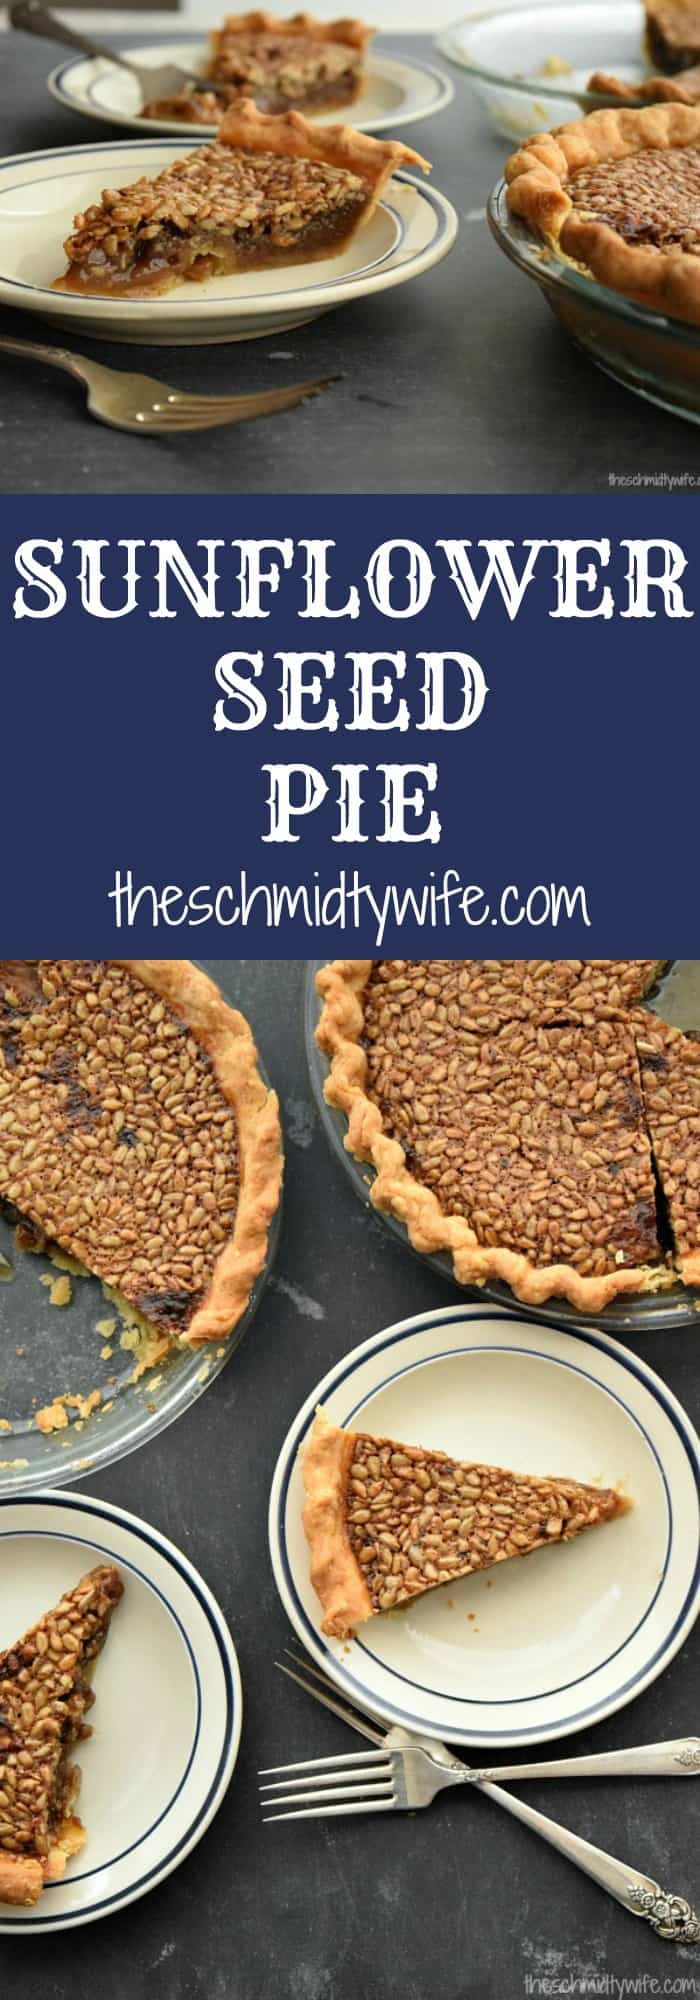 Sunflower Seed Pie